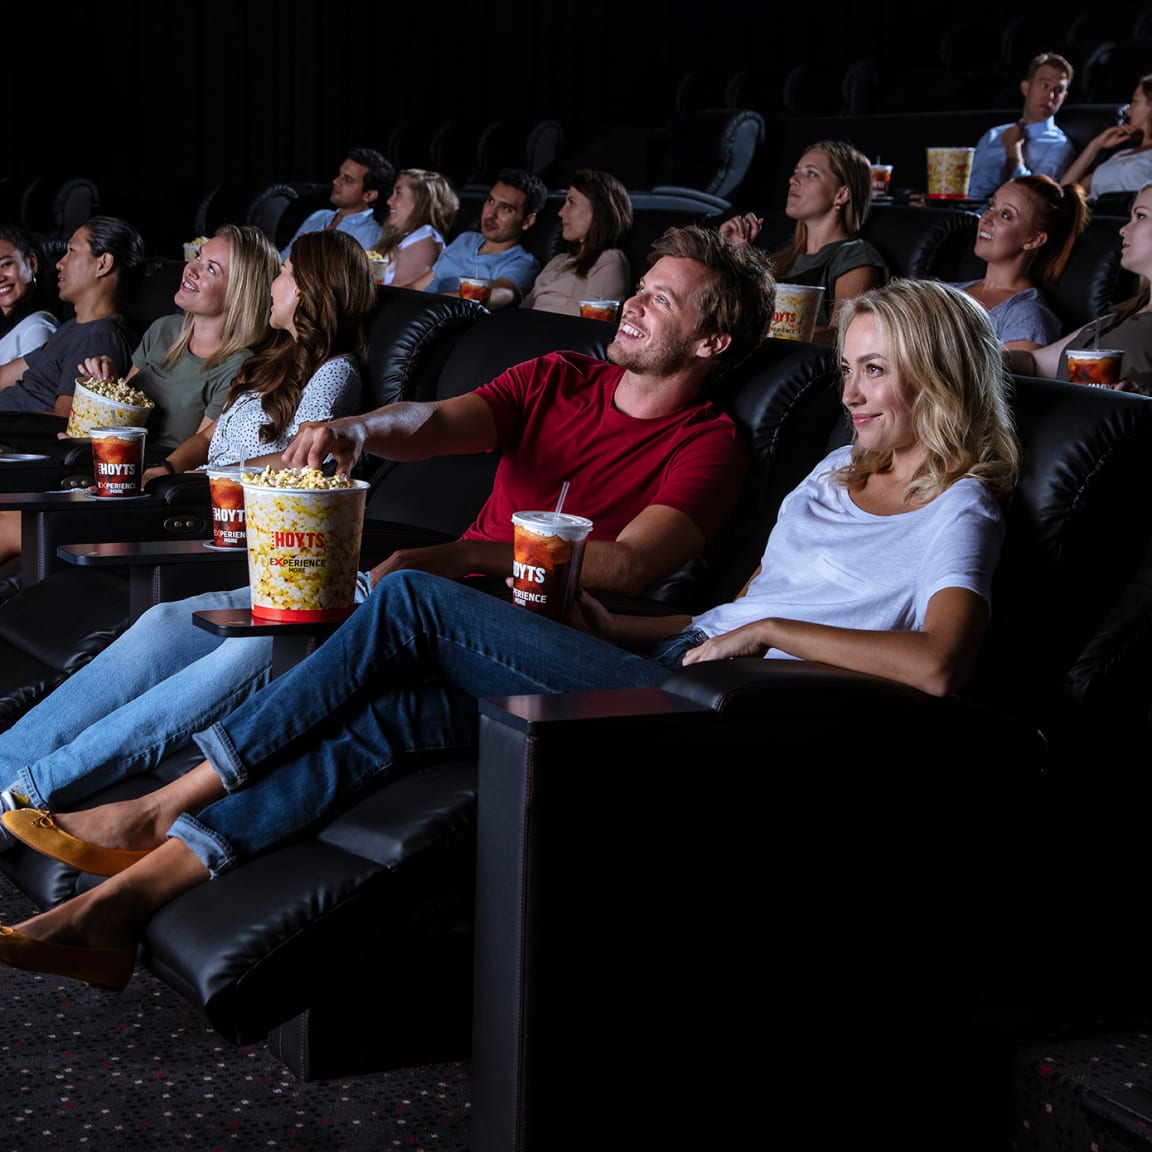 HOYTS: Redeem your Dine & Discover NSW vouchers